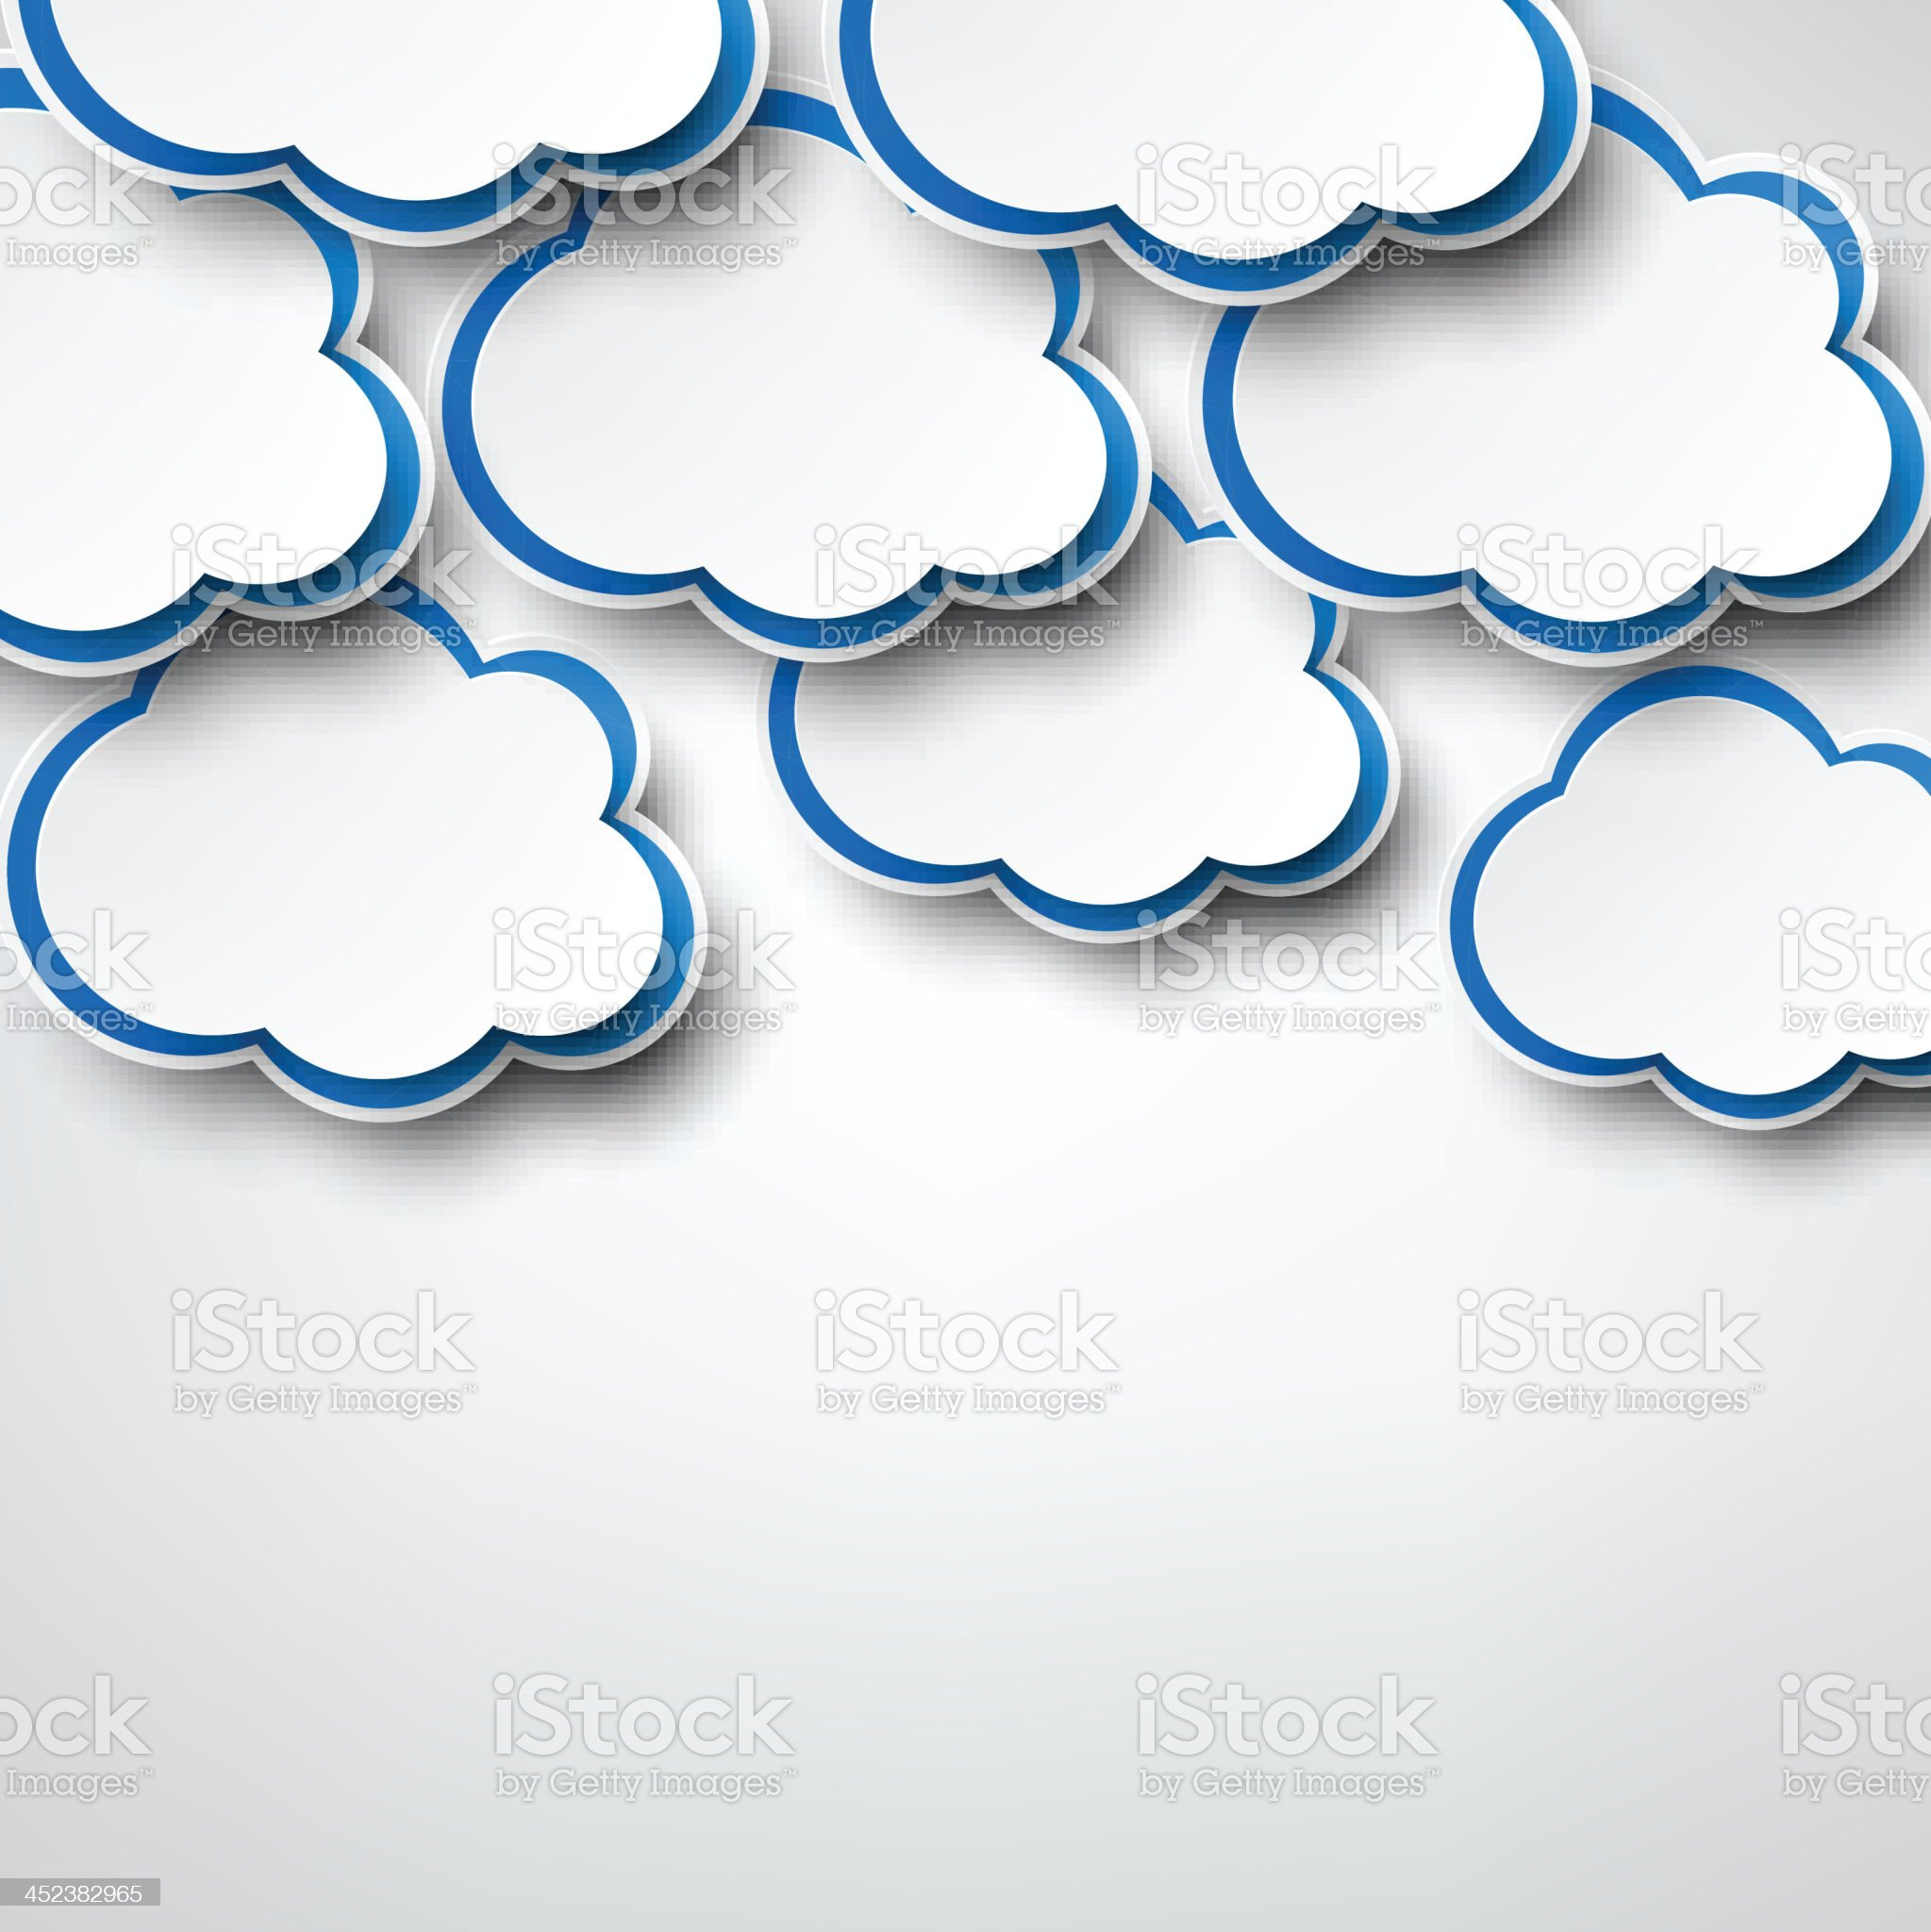 Paper white clouds on grey. royalty-free stock vector art